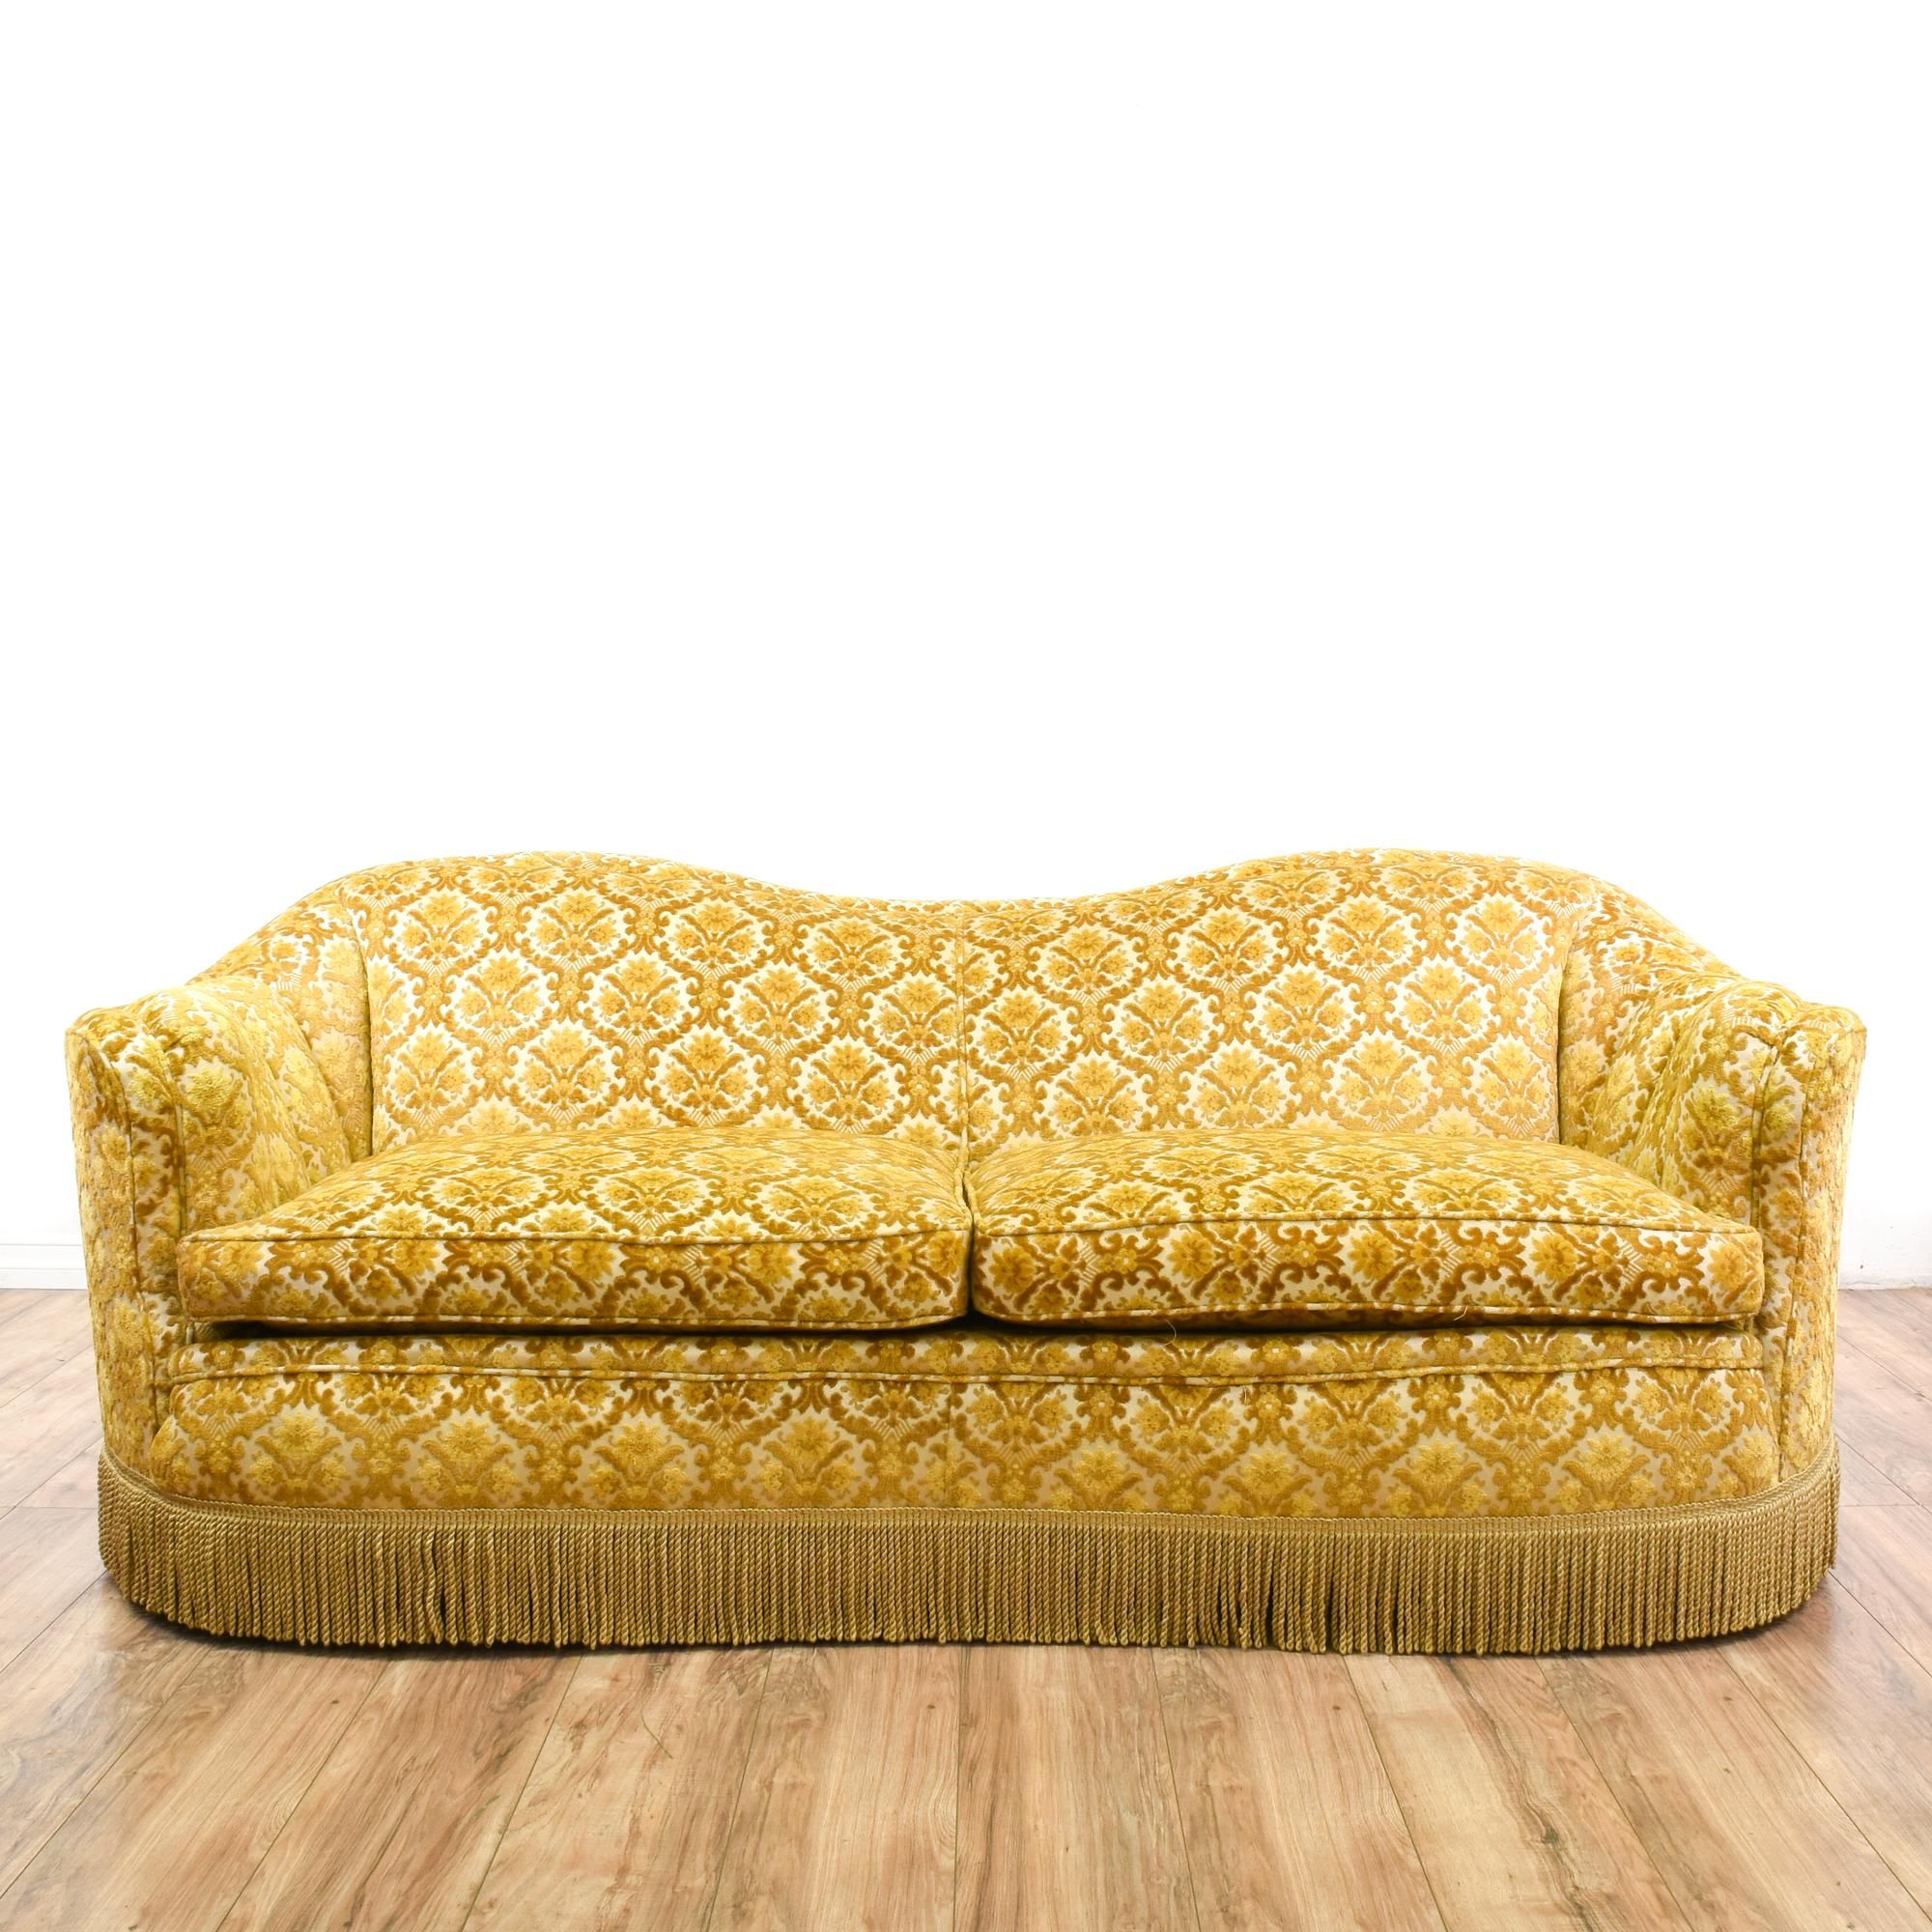 This Gorgeous Hollywood Regency Style Couch Has Fringe Trim, Plush